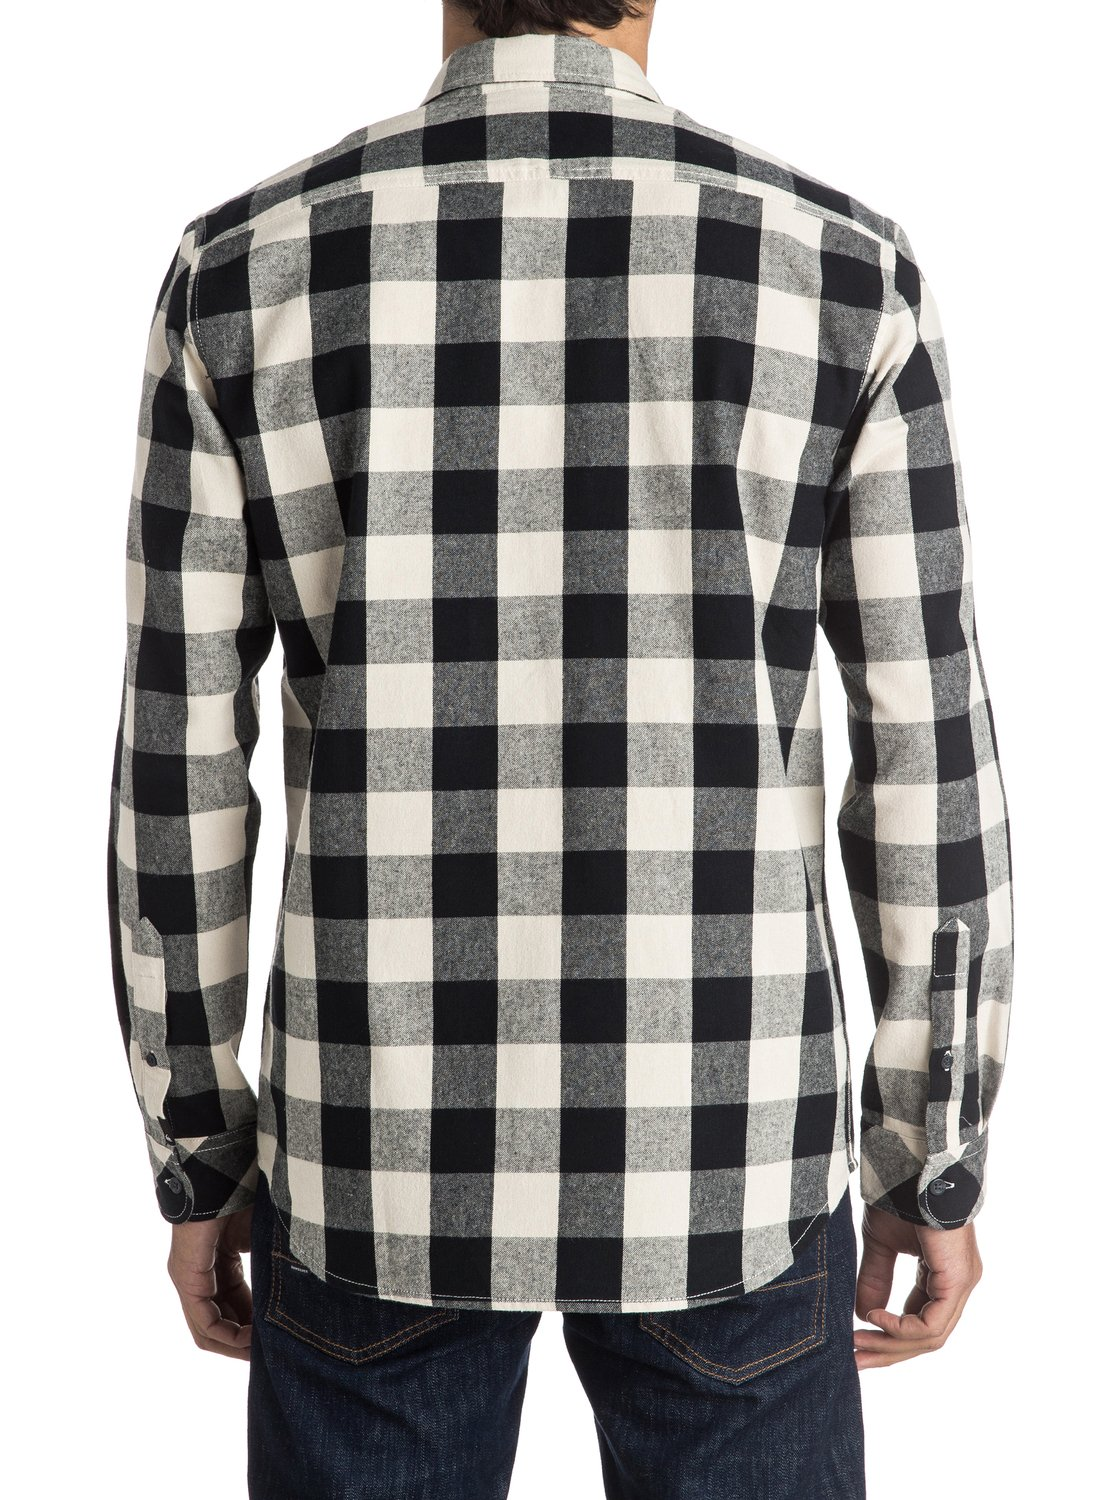 motherfly flannel long sleeve shirt 3613371961169